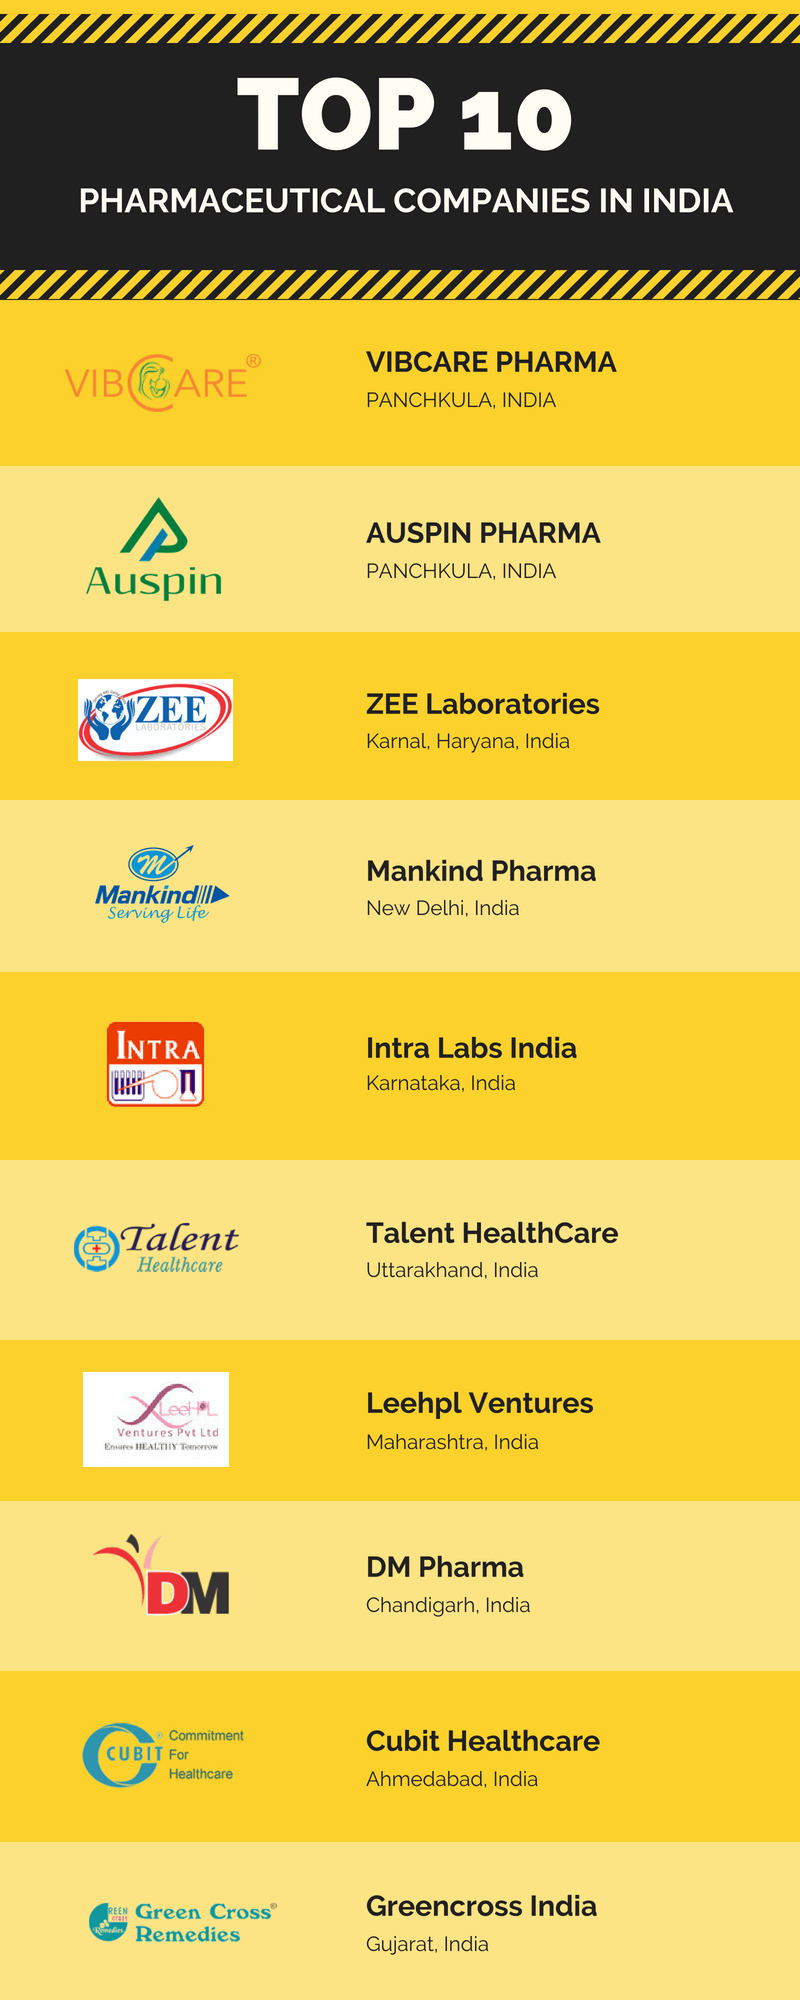 top pharmaceutical companies 2020